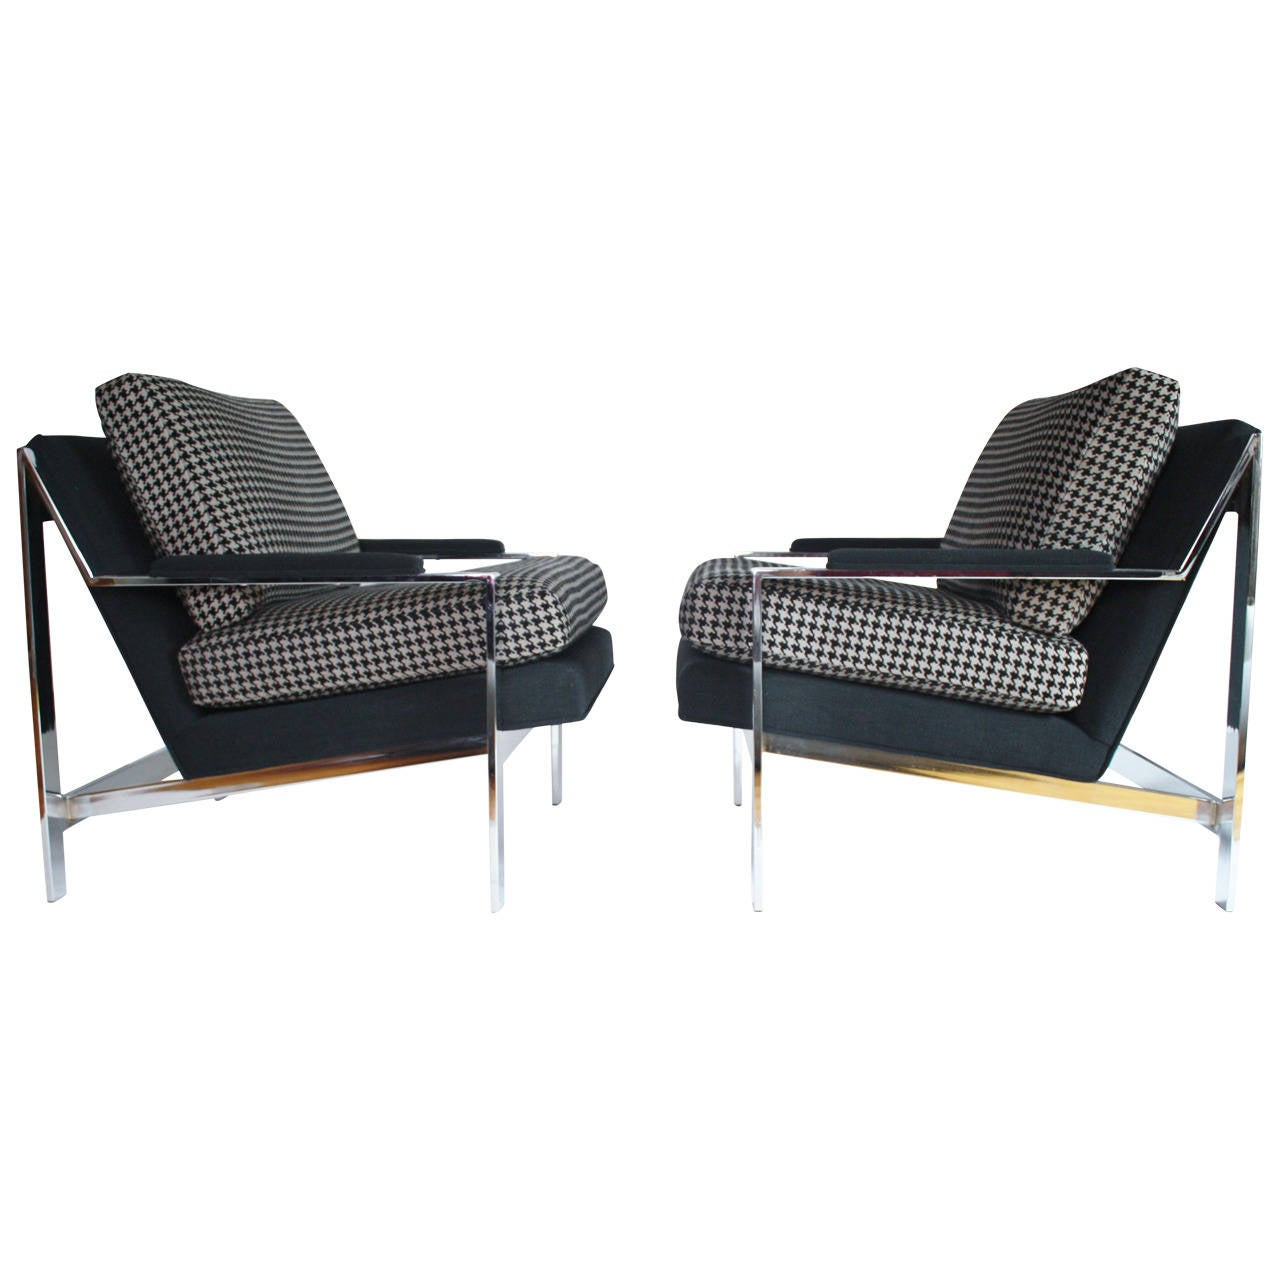 Pair of milo baughman style lounge chairs by cy mann for sale